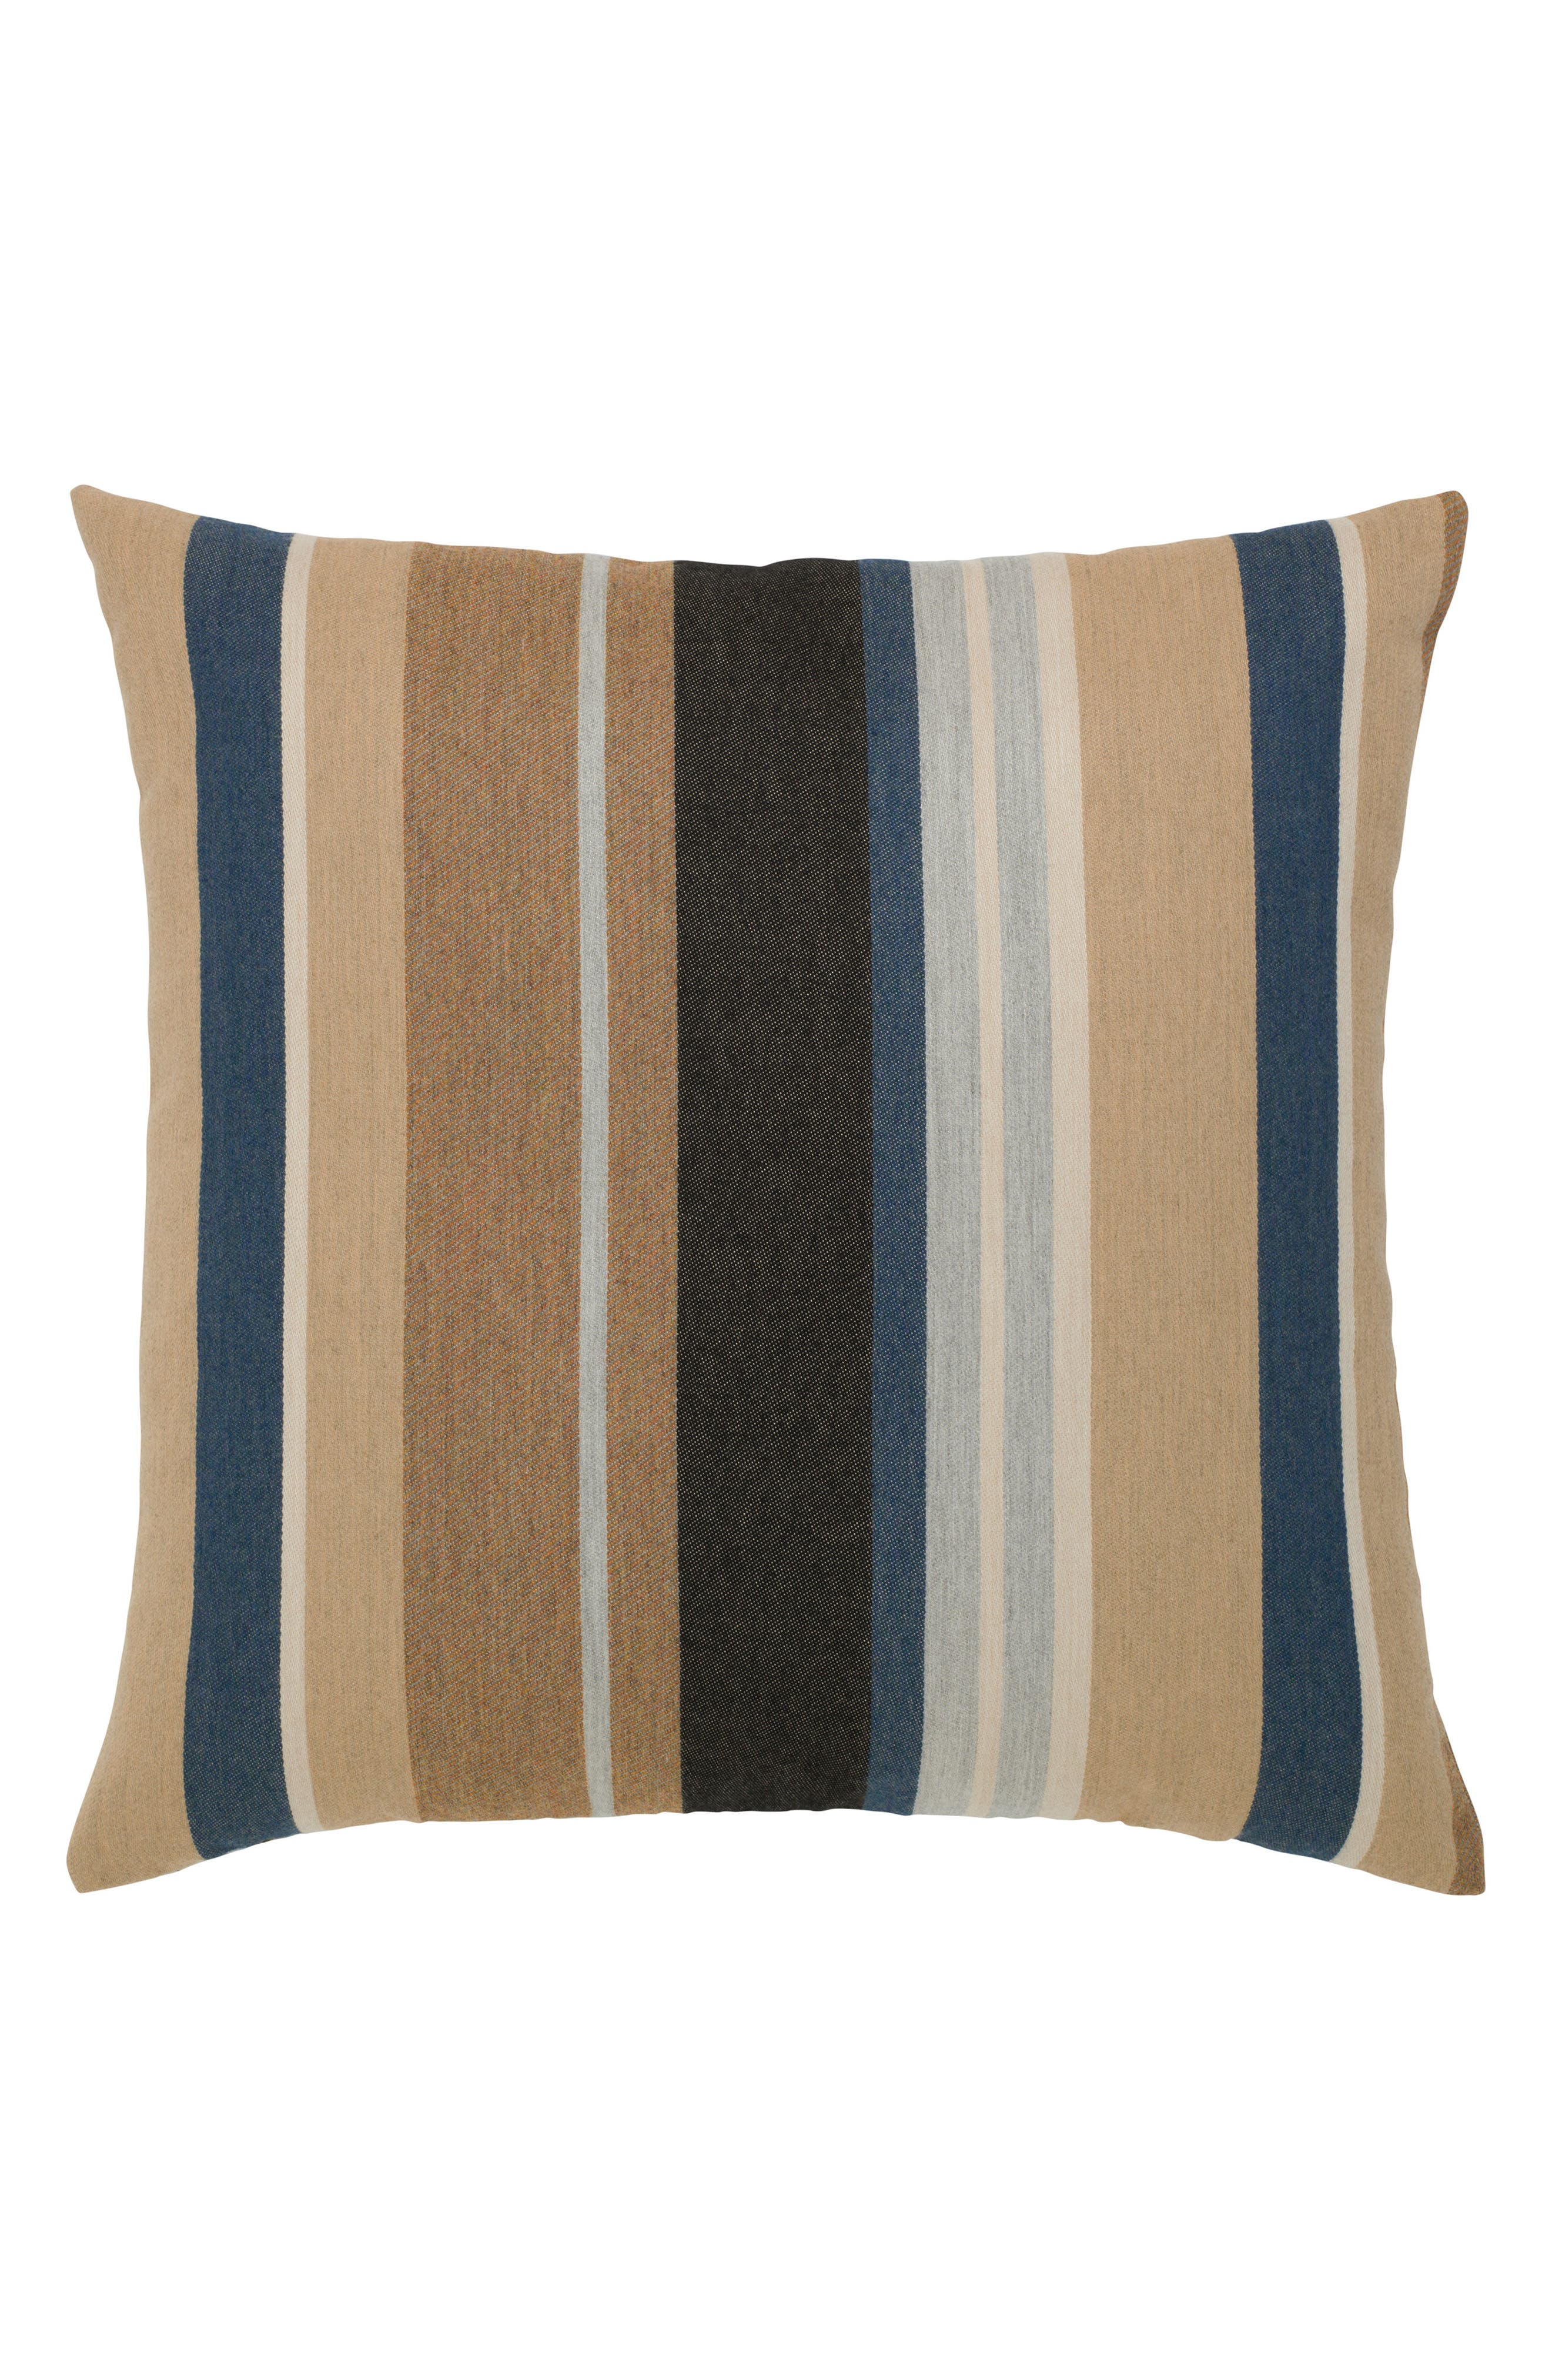 Main Image - Elaine Smith Reflection Indoor/Outdoor Accent Pillow